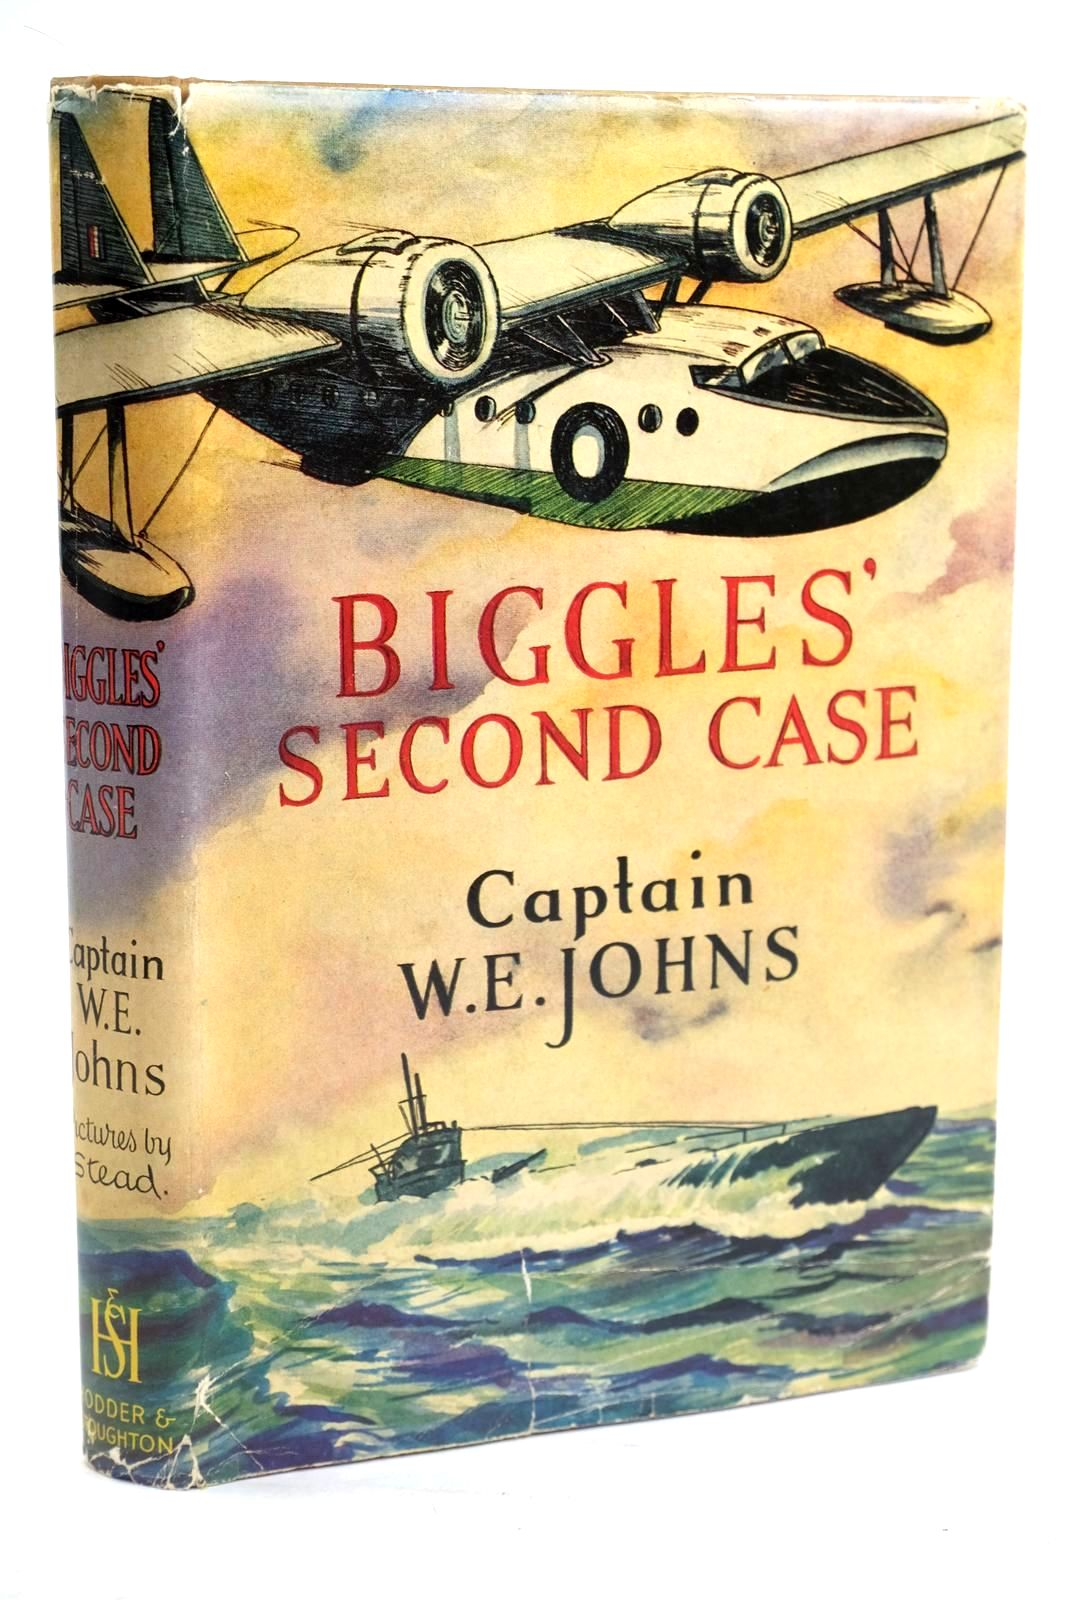 Photo of BIGGLES' SECOND CASE written by Johns, W.E. illustrated by Stead,  published by Hodder & Stoughton (STOCK CODE: 1319741)  for sale by Stella & Rose's Books